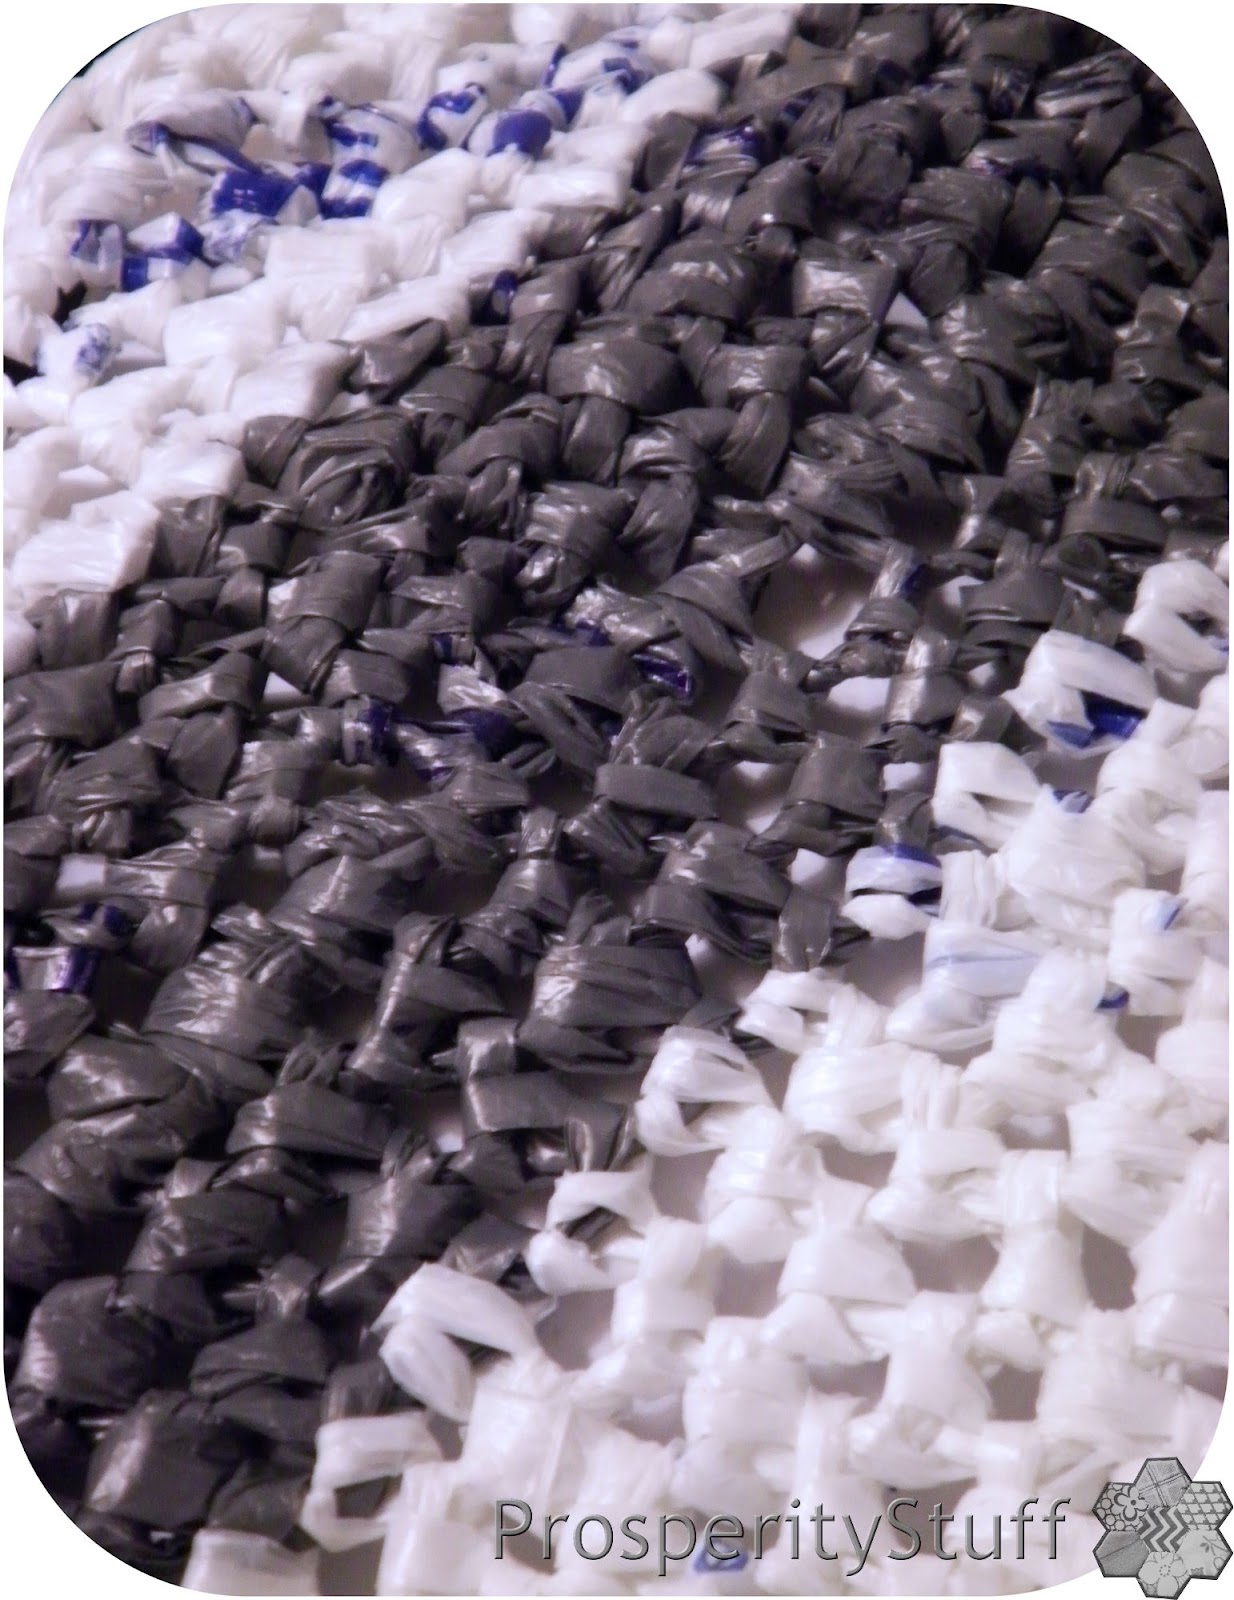 How To Make The Grocery Bag Sleeping Mats Annieofbluegables Plarn Or Plastic  Yarn For A Crocheted